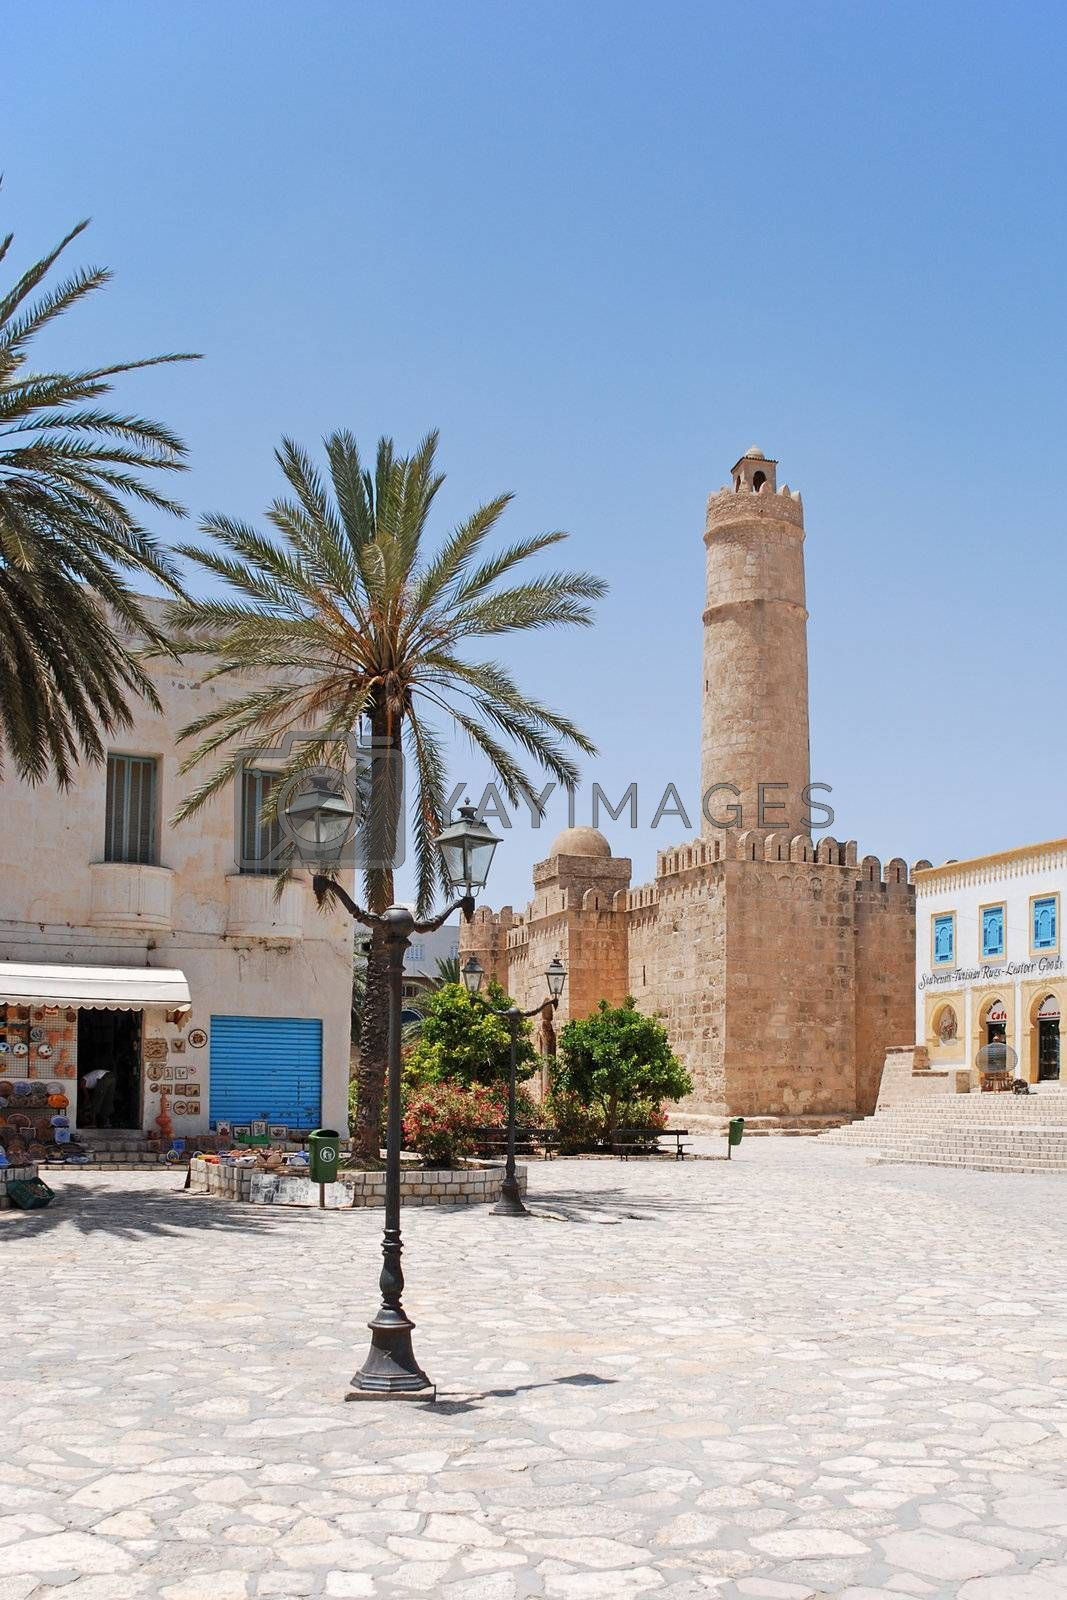 Ribat in Sousse, Tunisia by sergeyakovlev